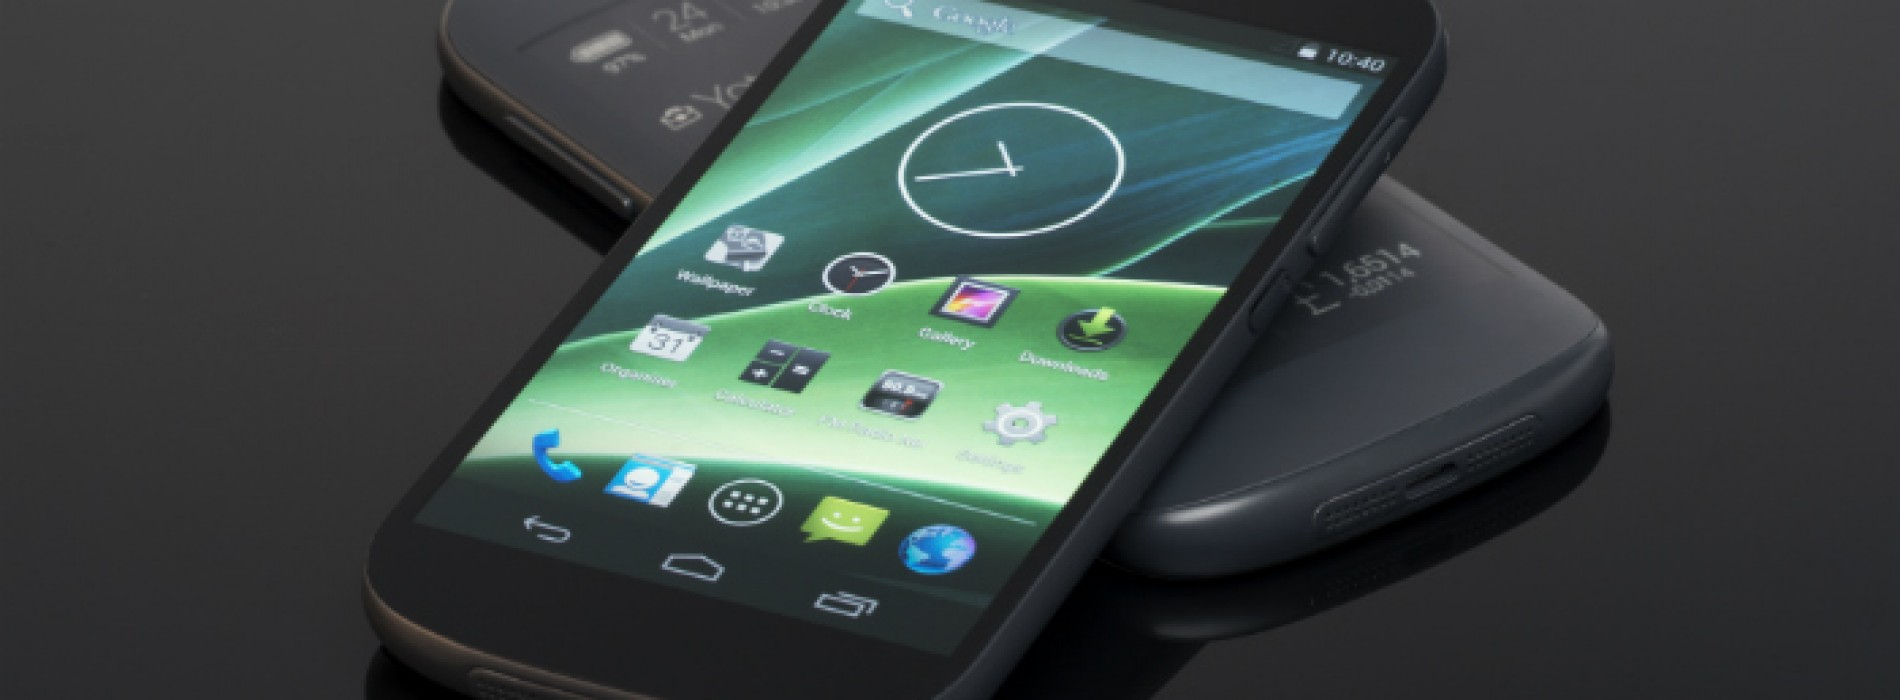 YotaPhone debuts next-gen smartphone at MWC